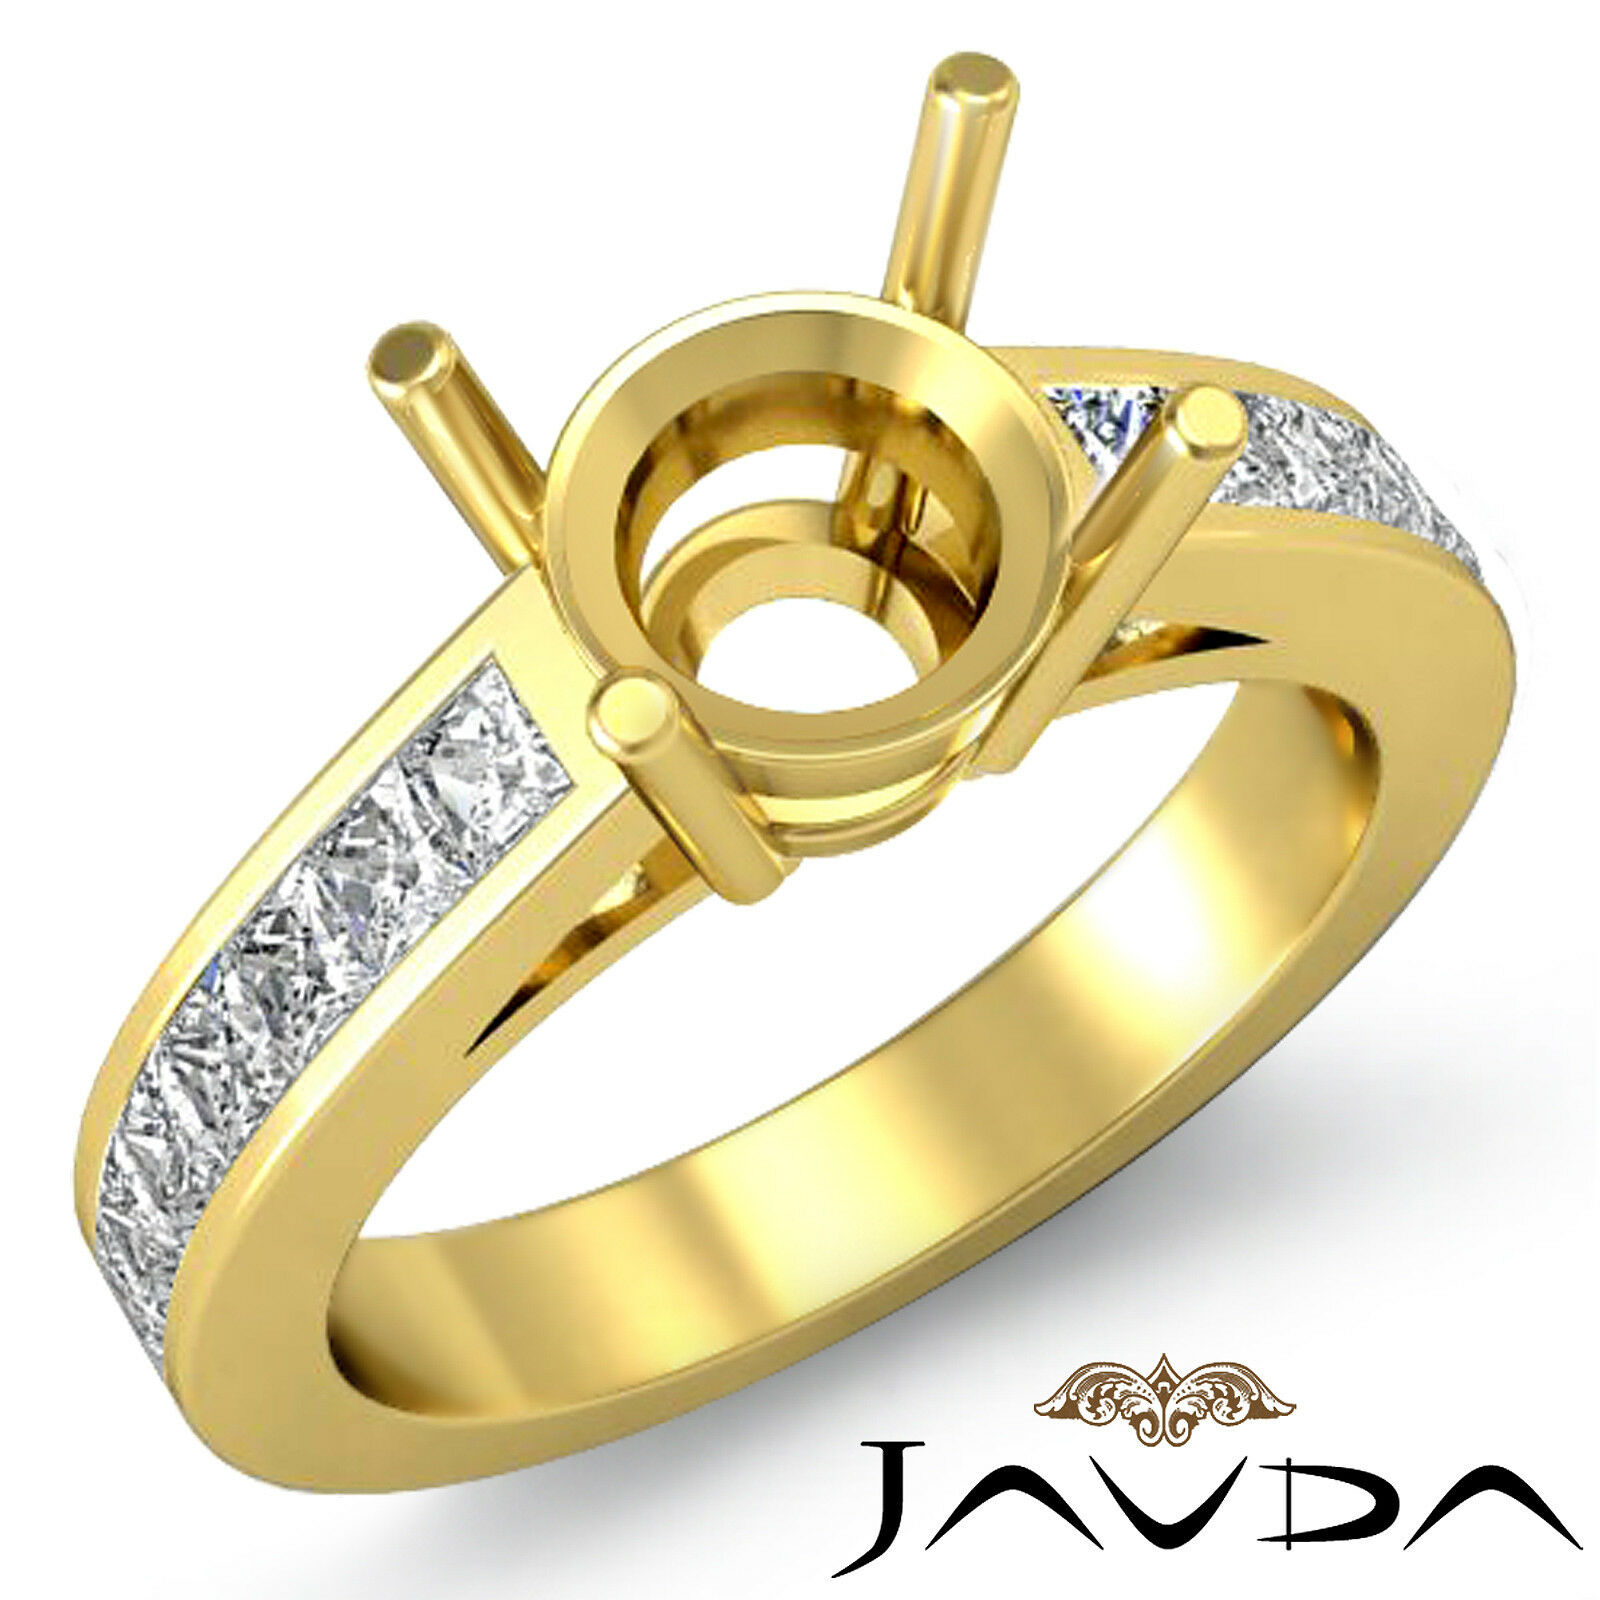 Natural Diamond Engagament Javda Ring 18k Yellow gold 0.5Ct Round Semi Mount F